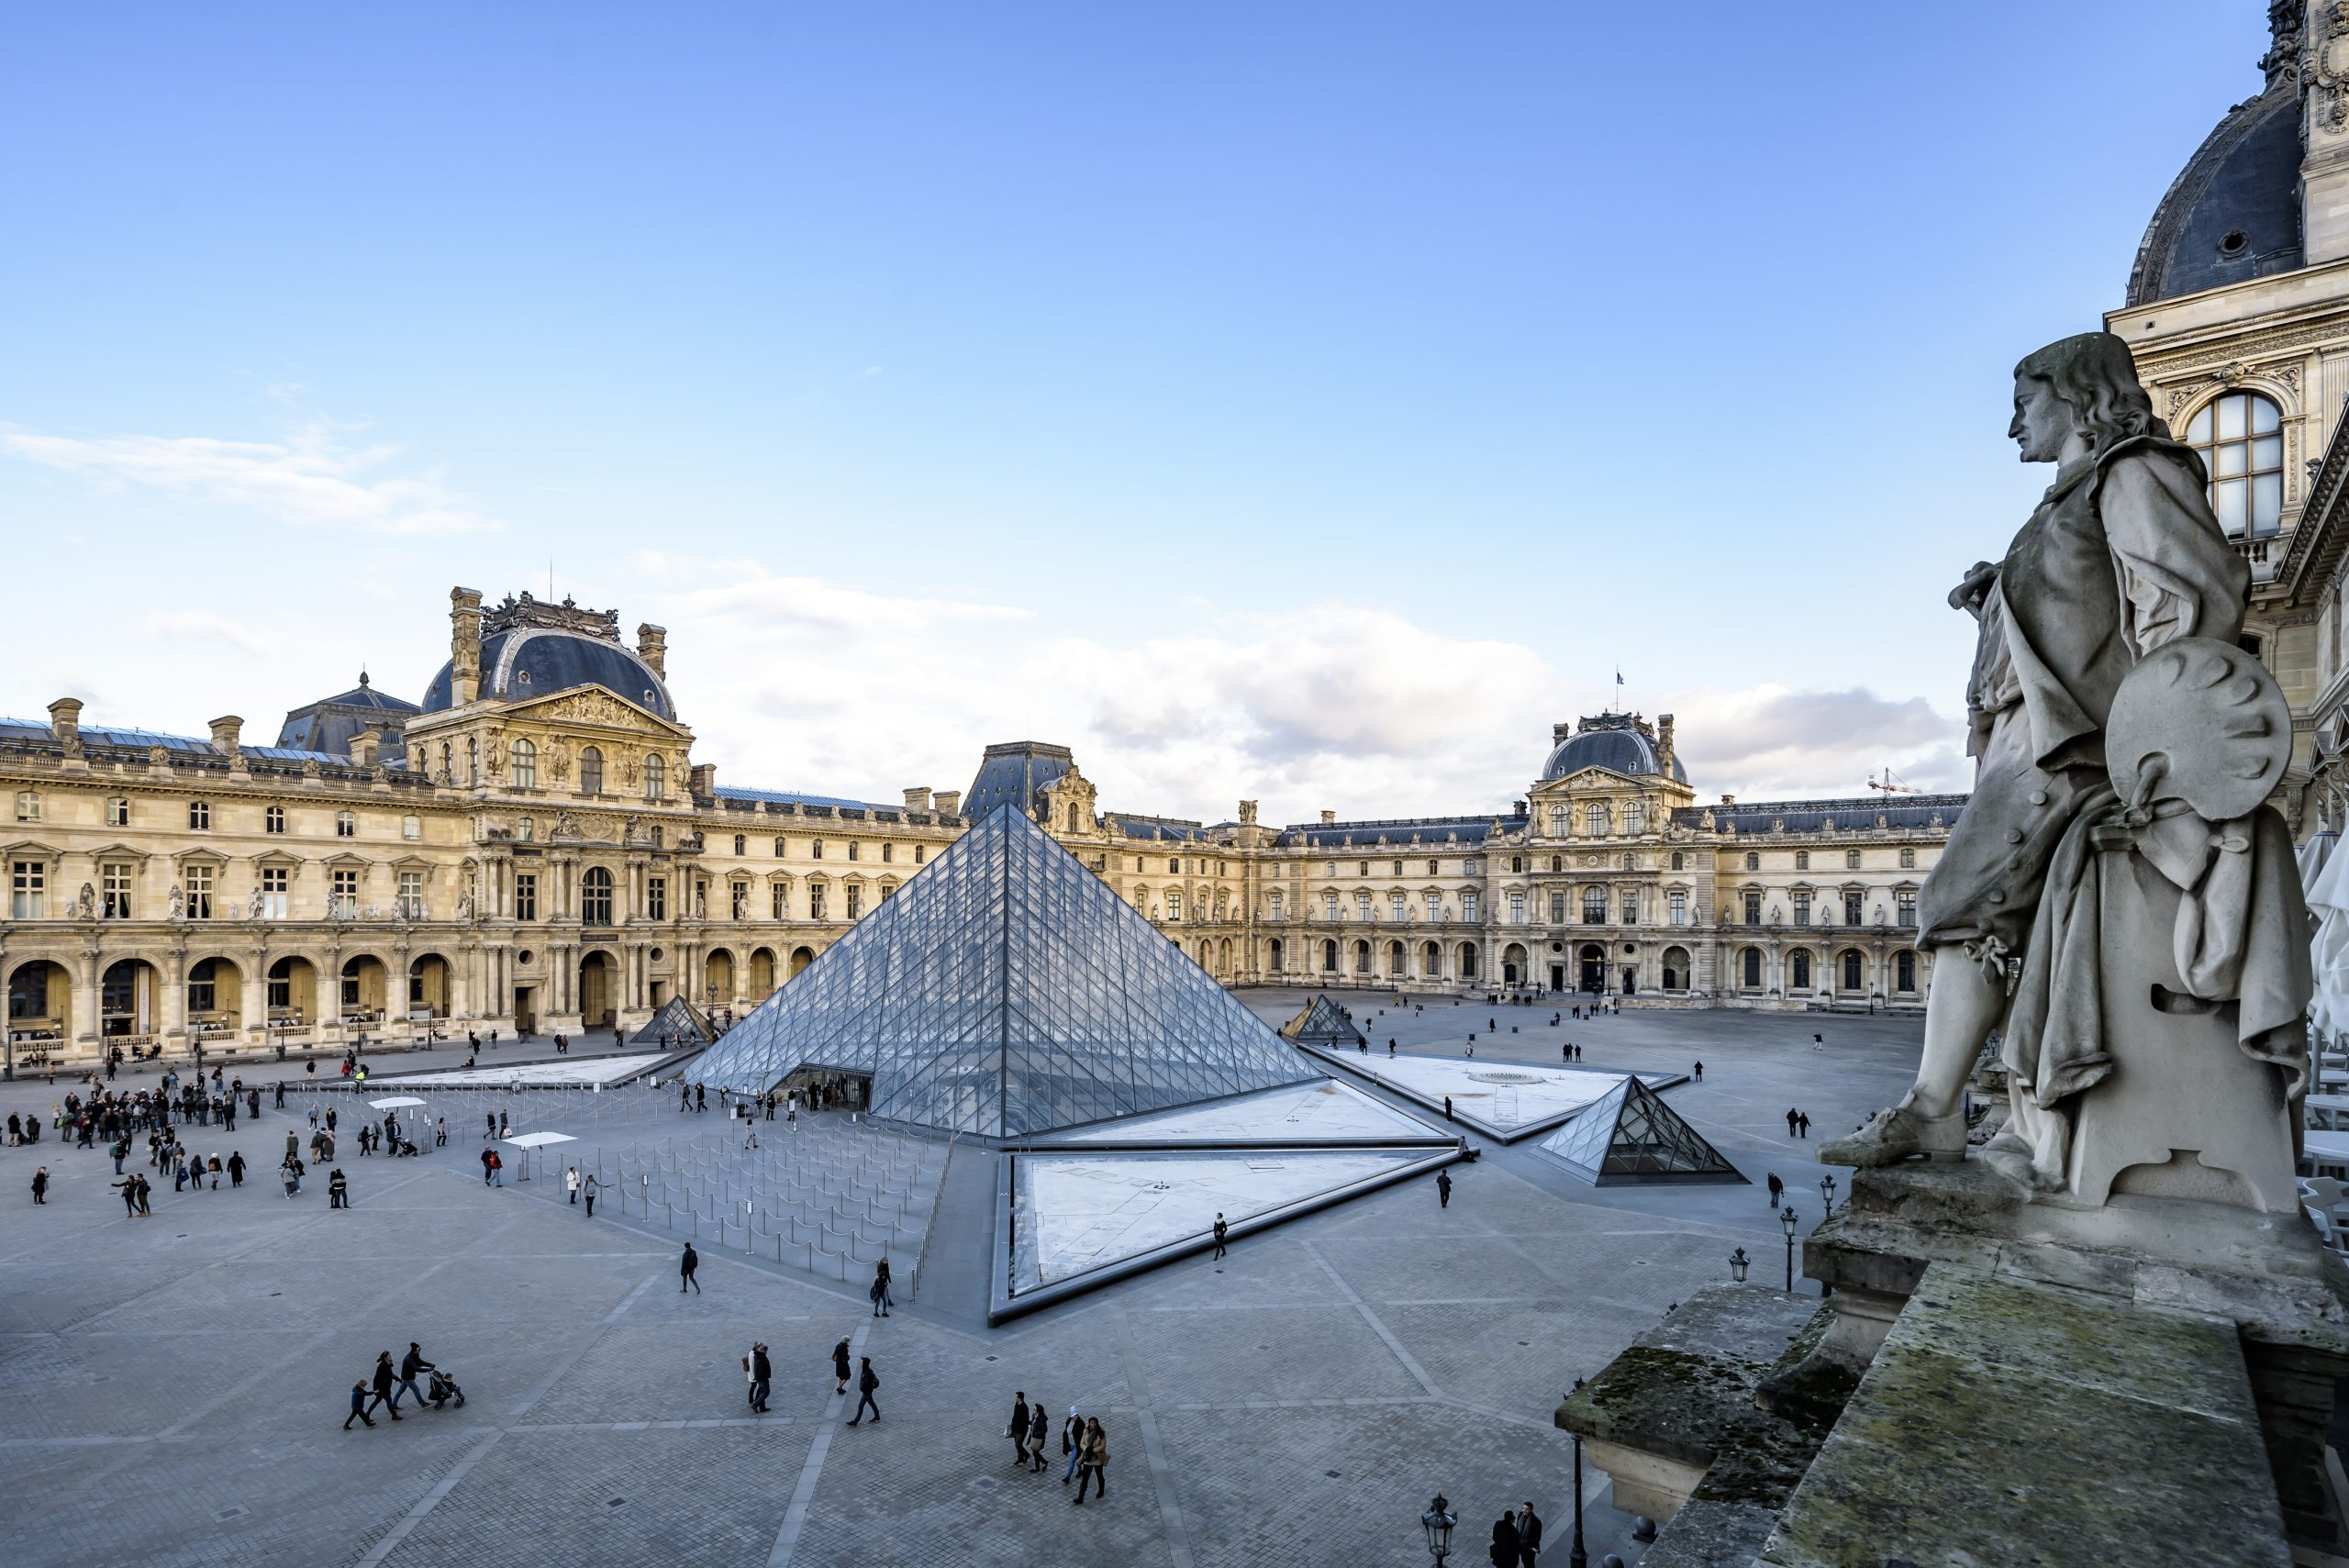 The latest luxury? A treat from the Louvre